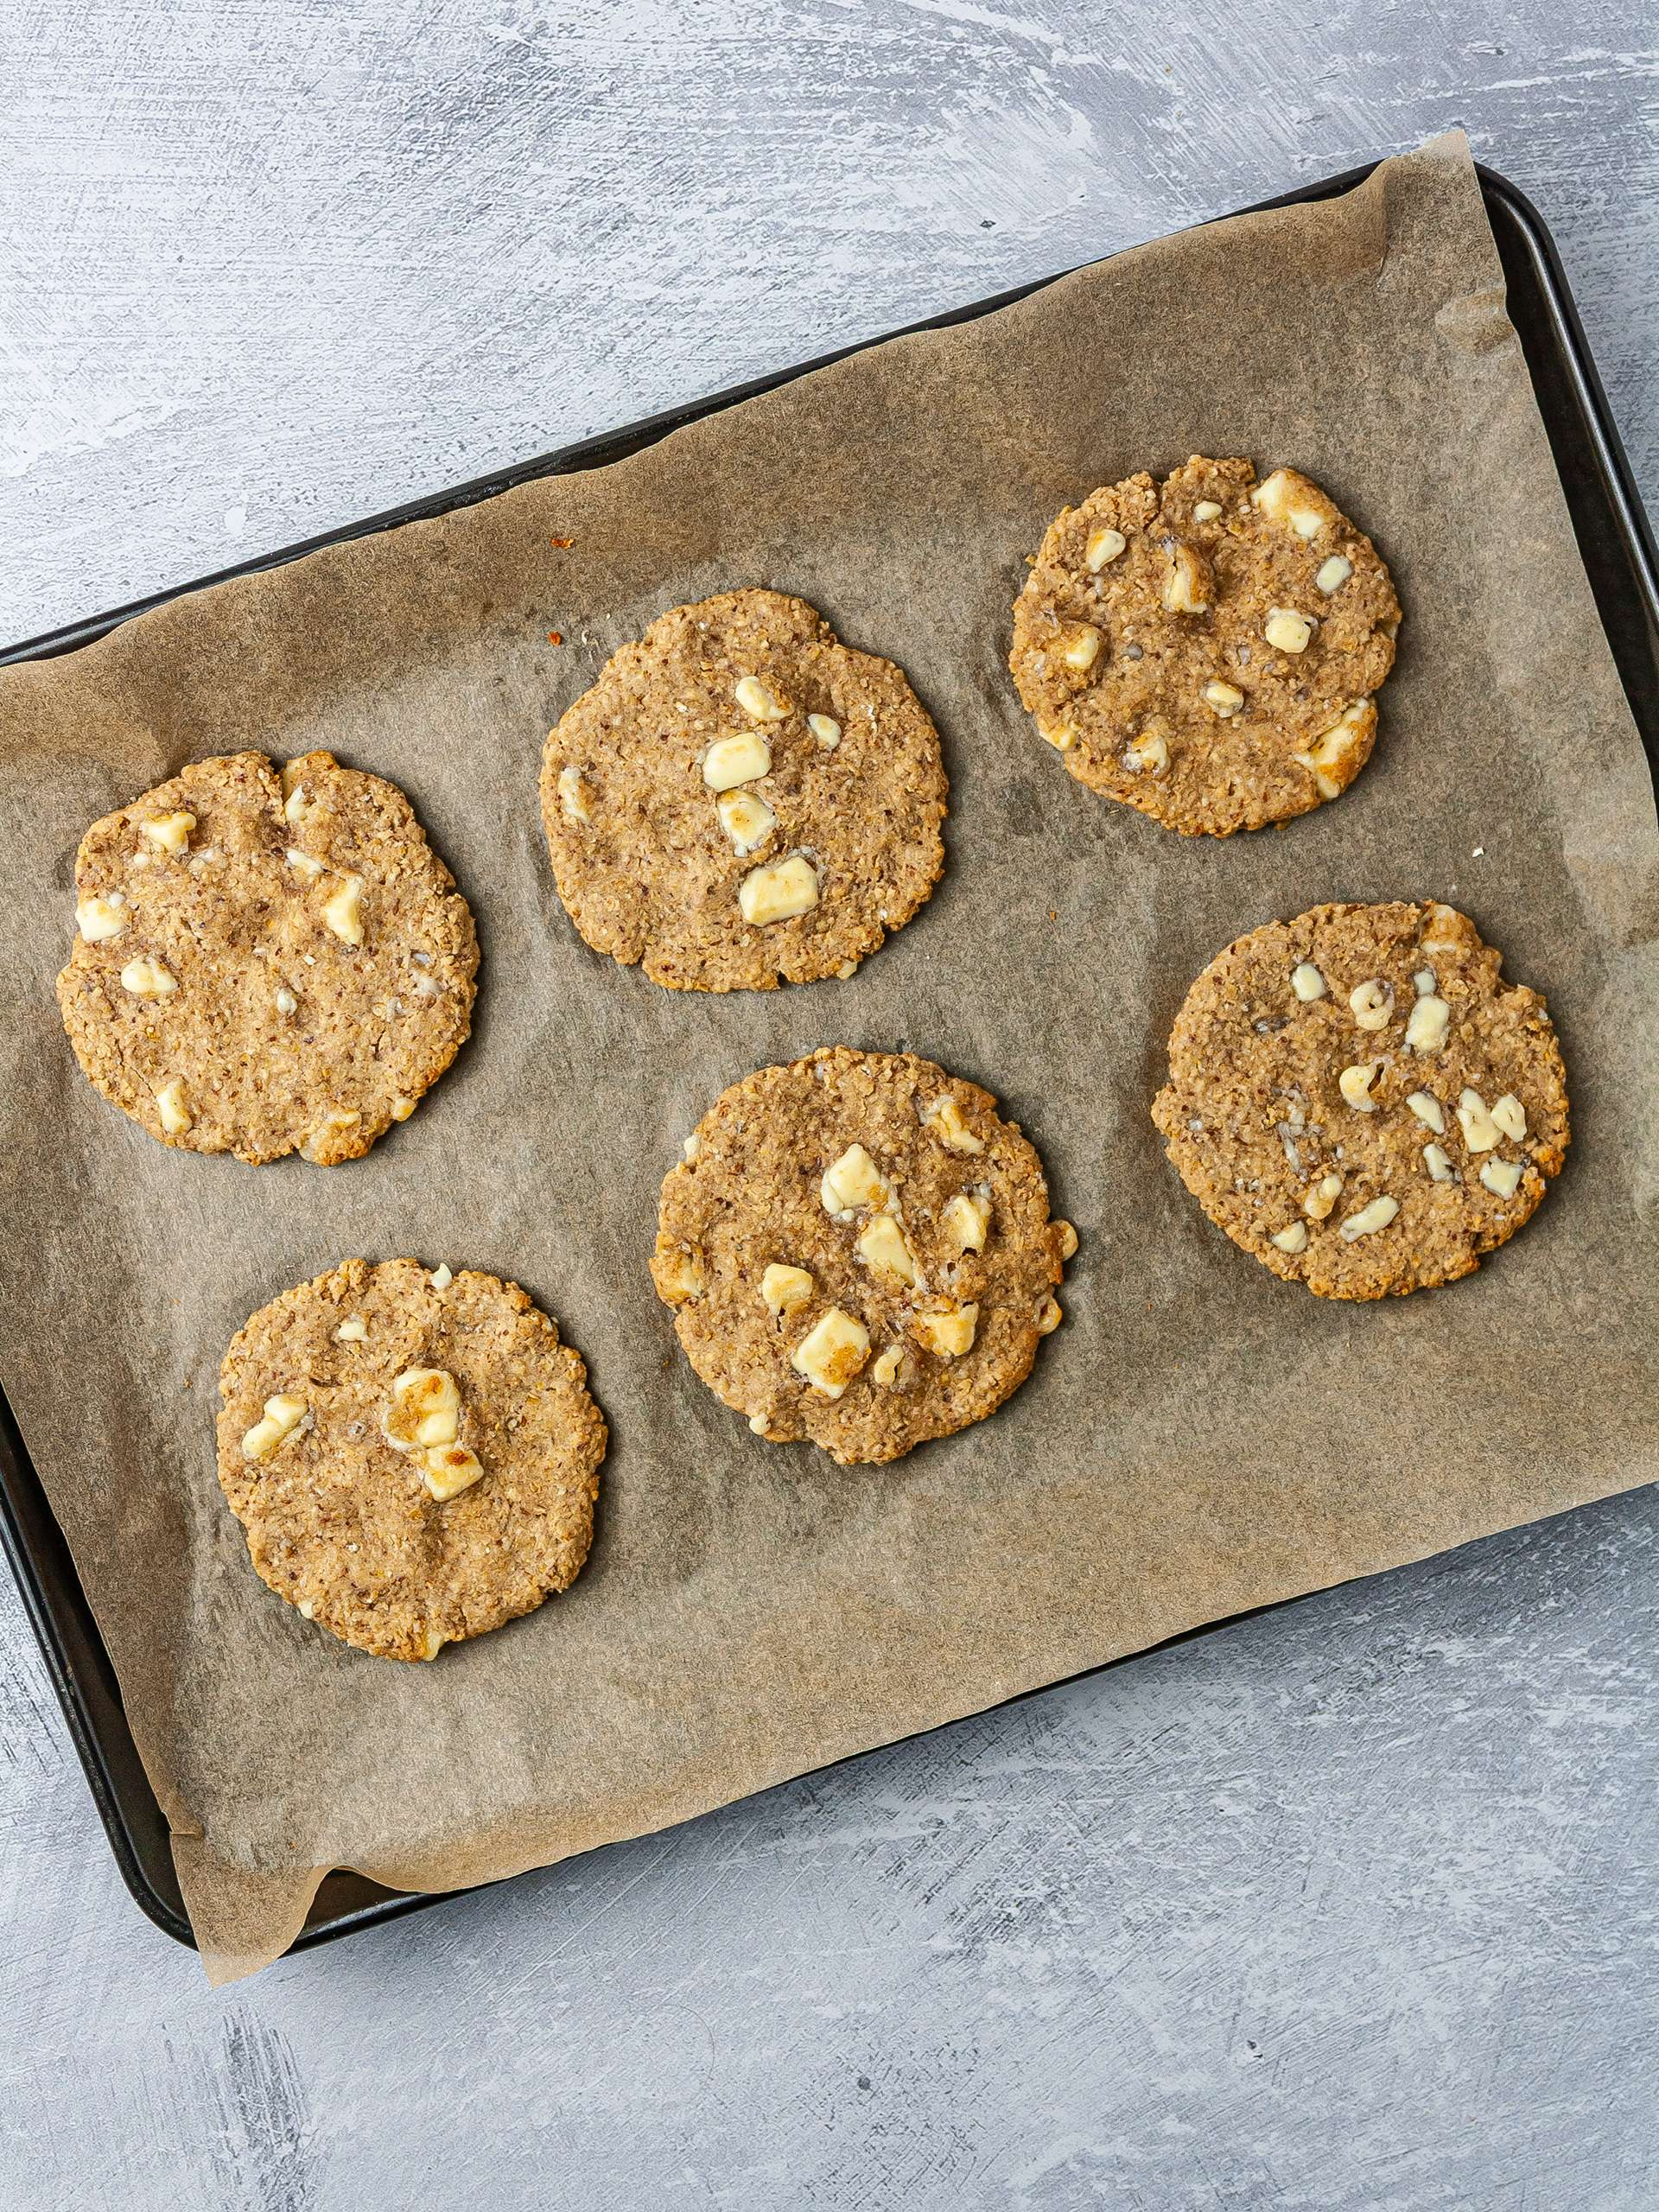 Vegan white chocolate chip cookies baked on a baking tray.